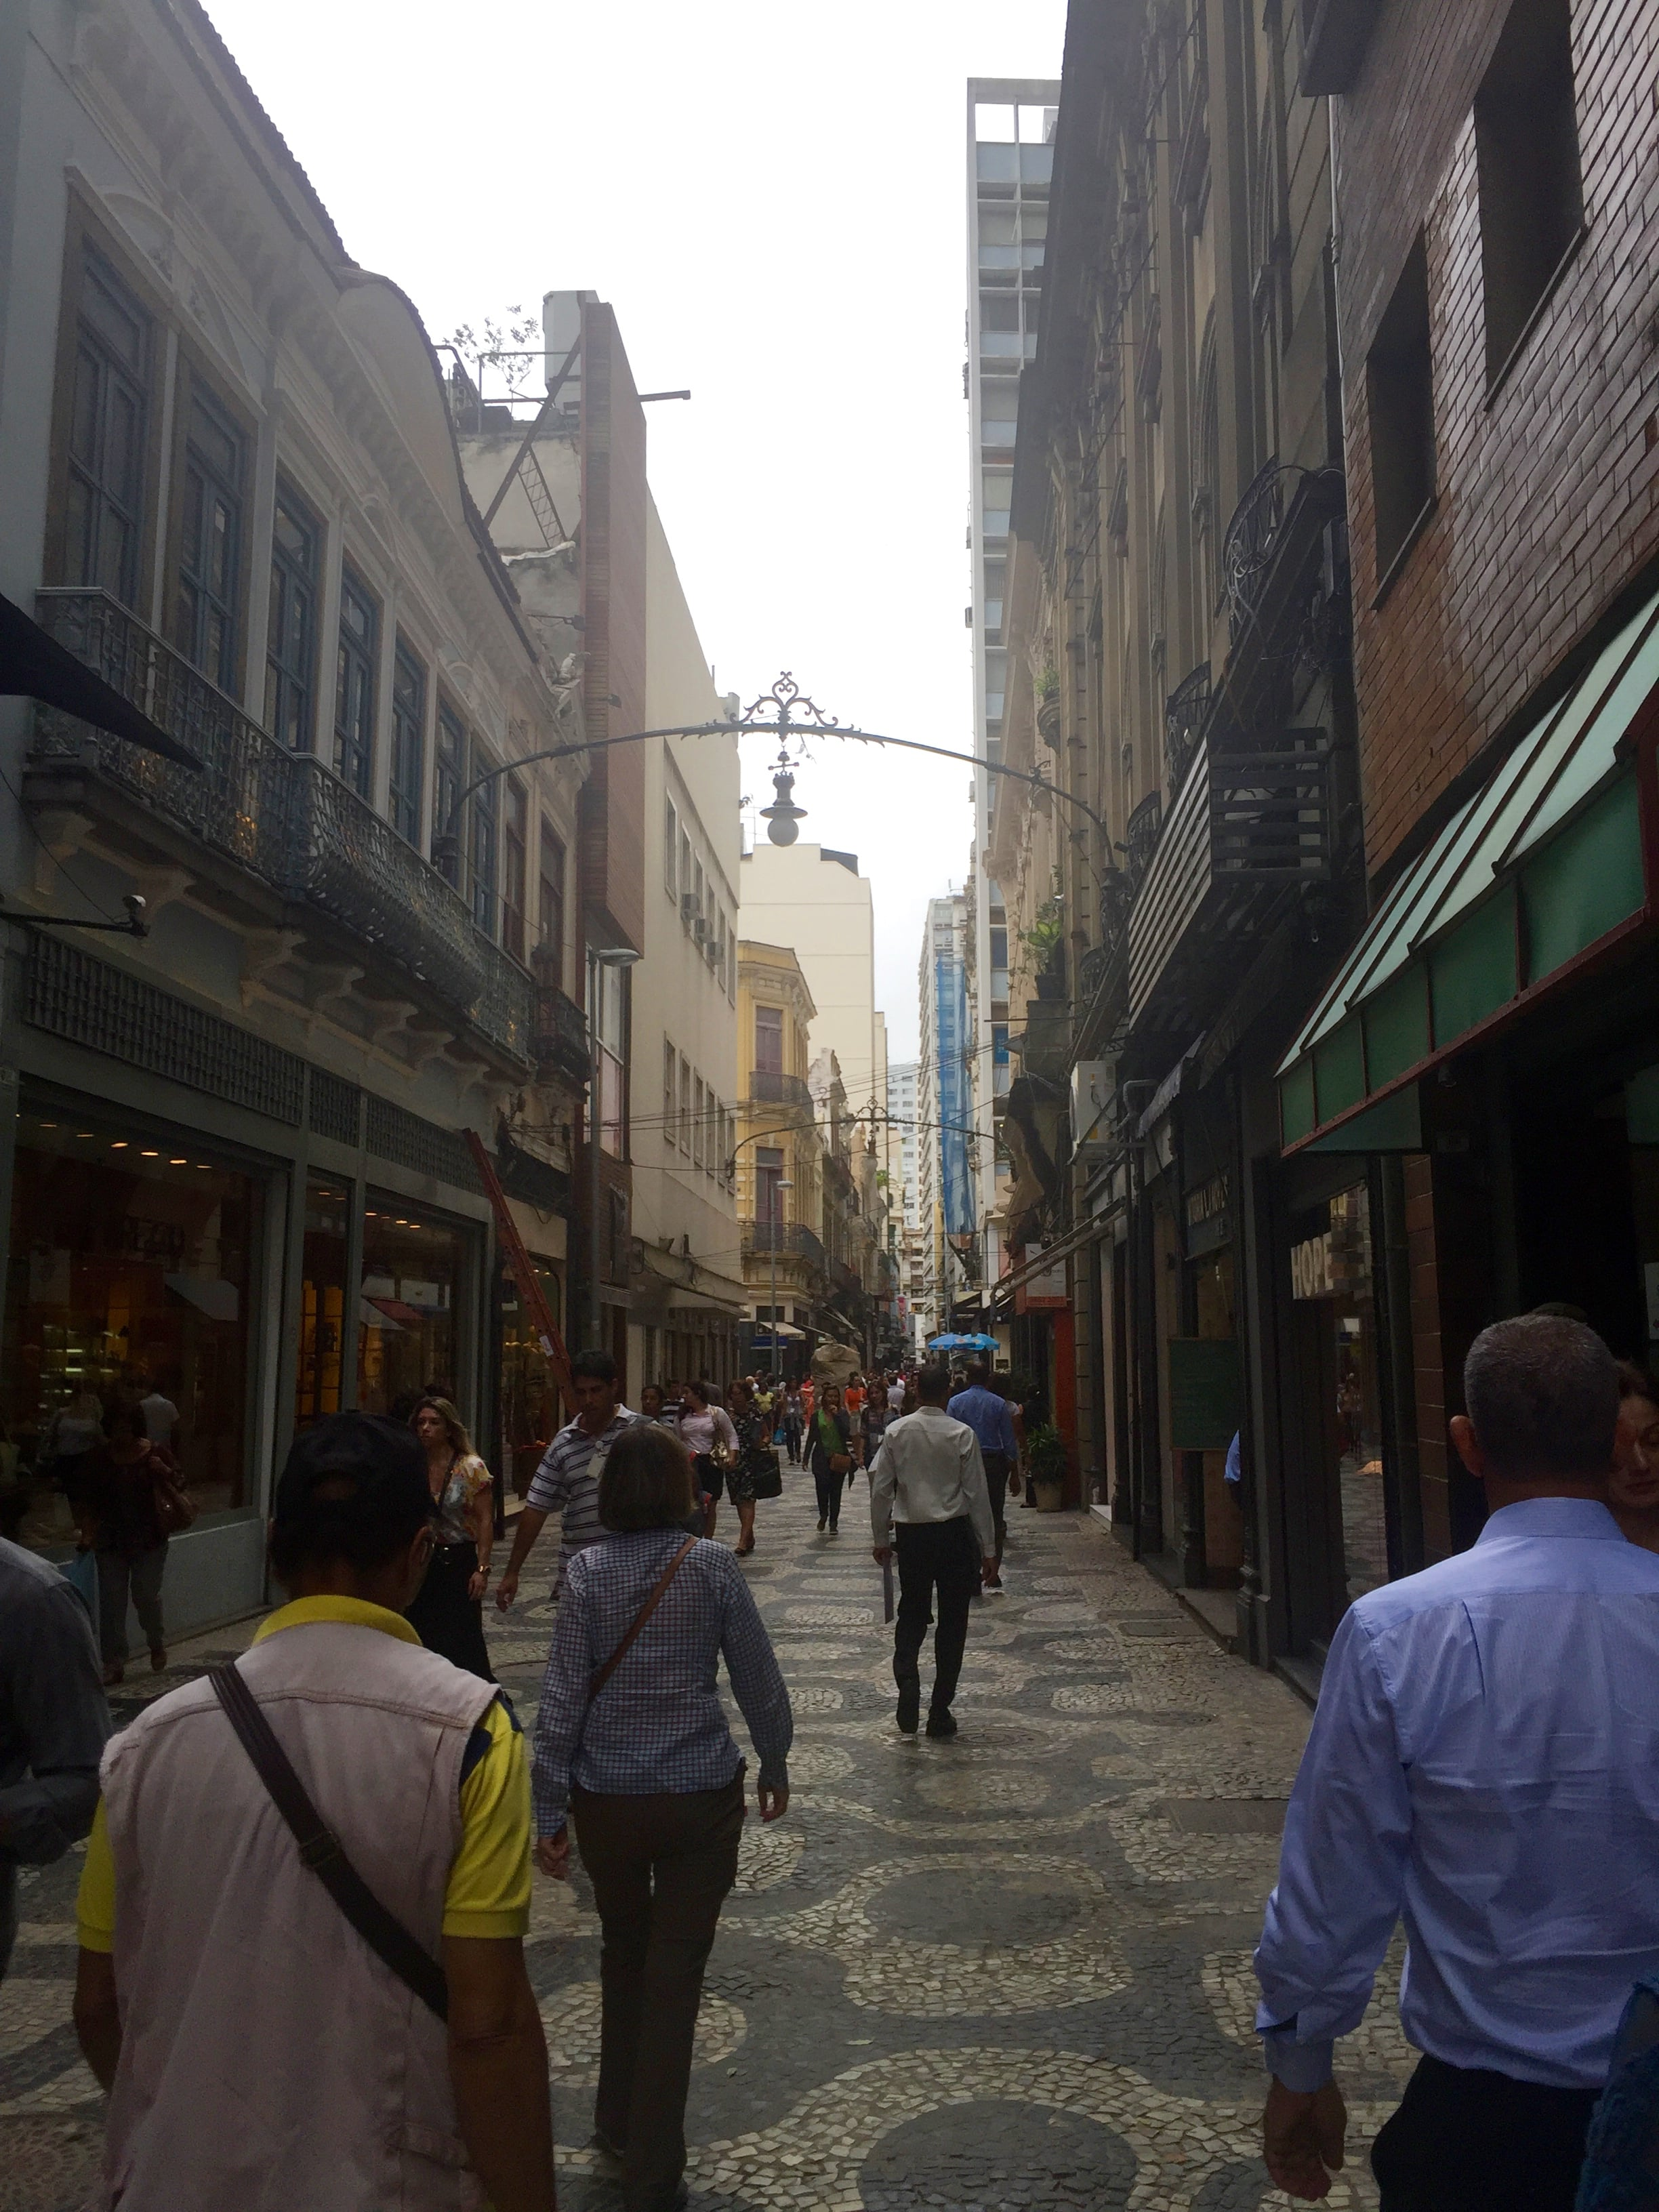 One of the streets leading off of Carioca Square